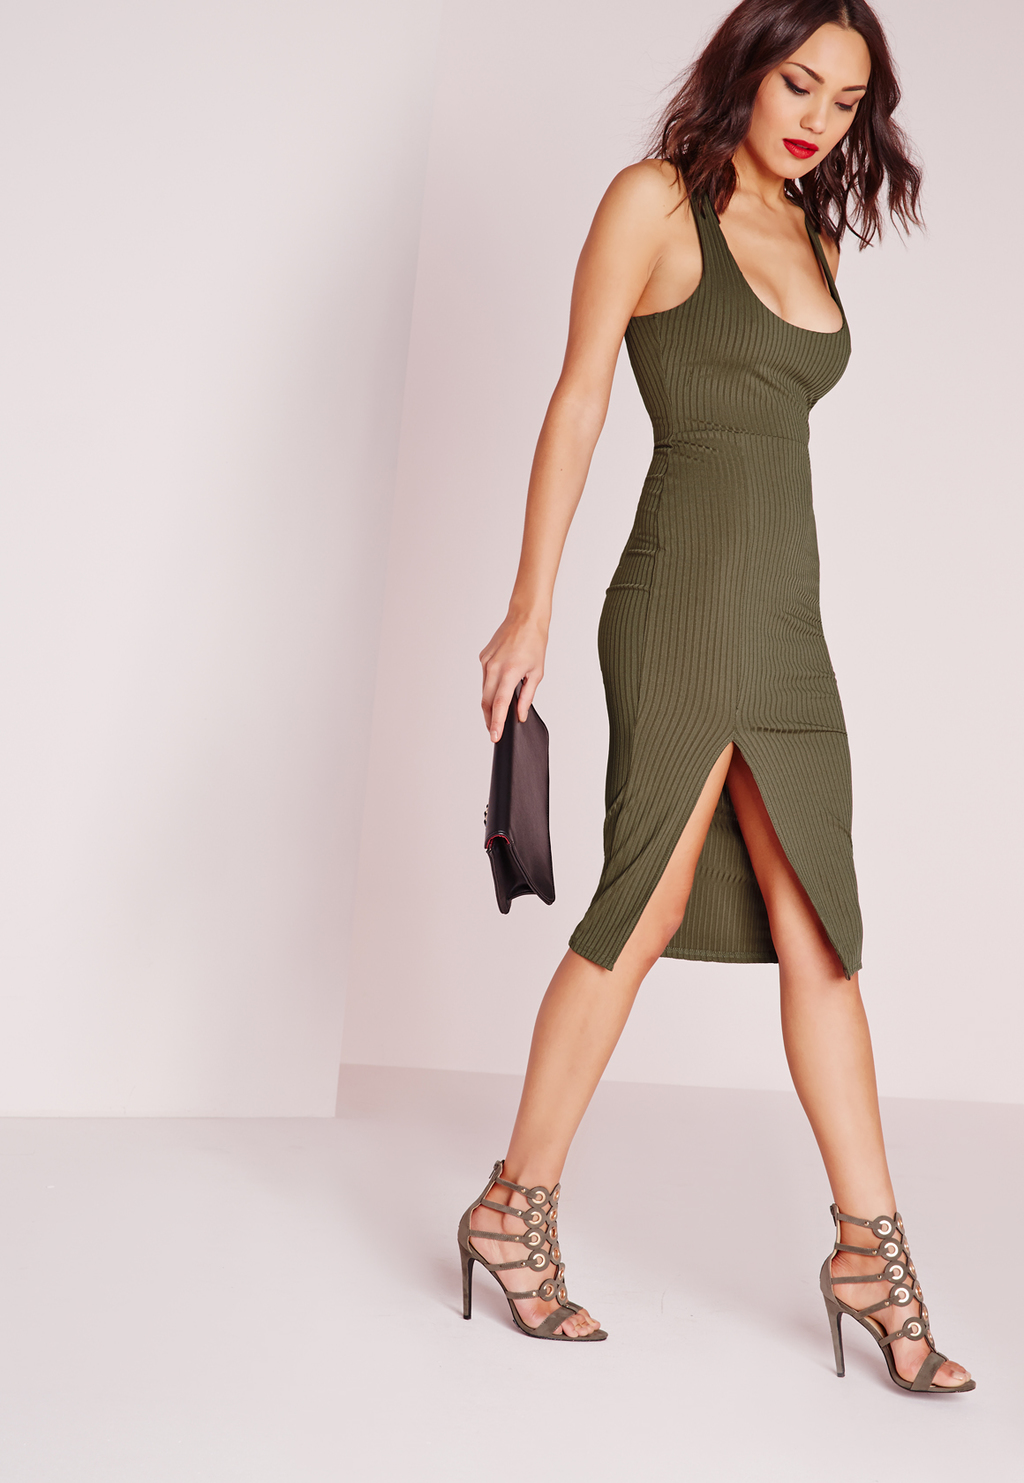 Ribbed Scoop Neck Midi Dress Khaki, Beige - fit: tight; pattern: plain; sleeve style: sleeveless; style: bodycon; predominant colour: khaki; occasions: evening; length: on the knee; neckline: scoop; fibres: polyester/polyamide - stretch; hip detail: slits at hip; sleeve length: sleeveless; texture group: jersey - clingy; pattern type: fabric; season: s/s 2016